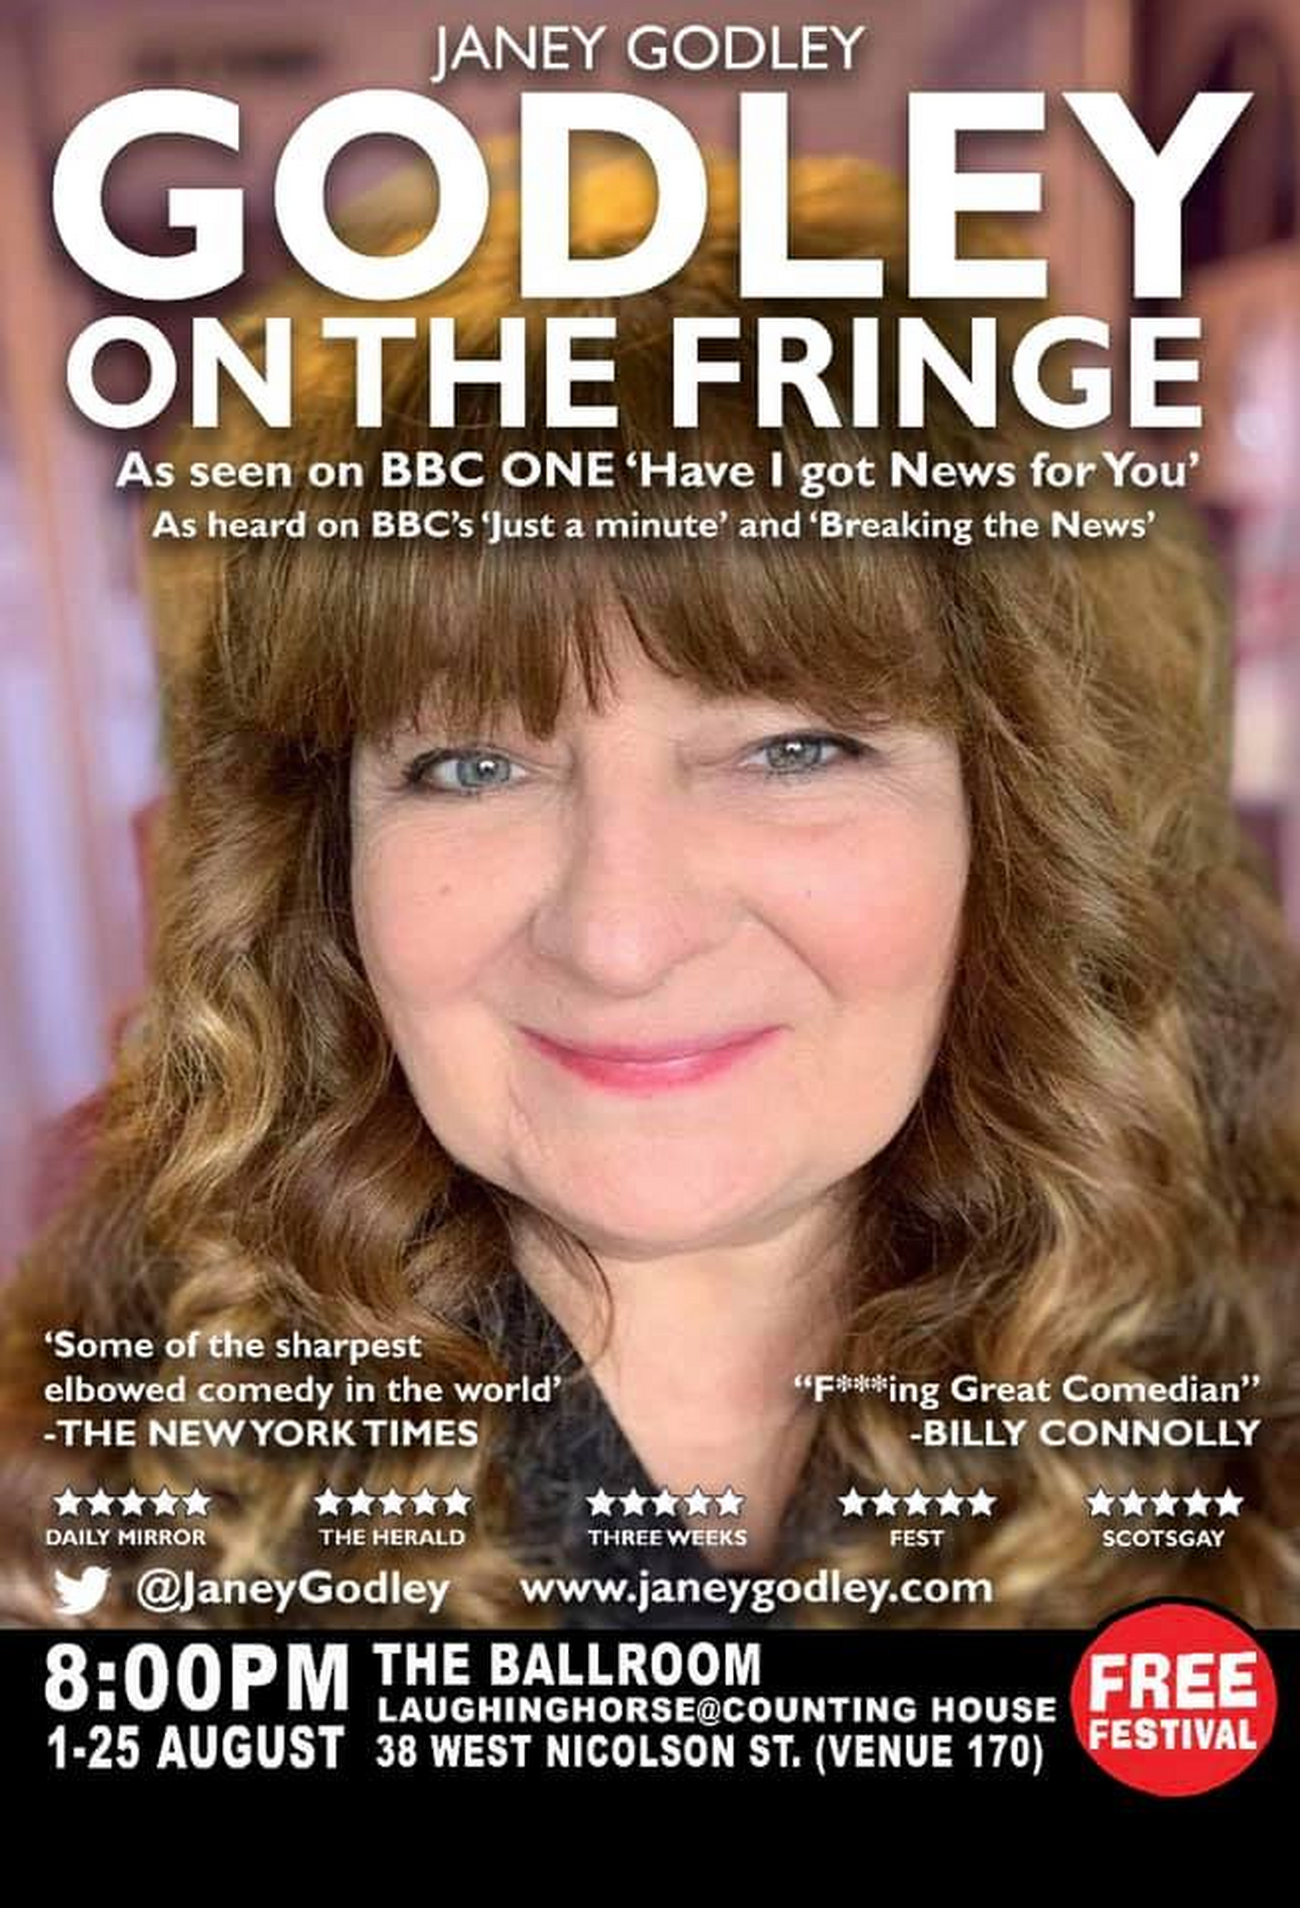 EDINBURGH 2019: BWW Review: GODLEY ON THE FRINGE, Laughing Horse @ The Counting House